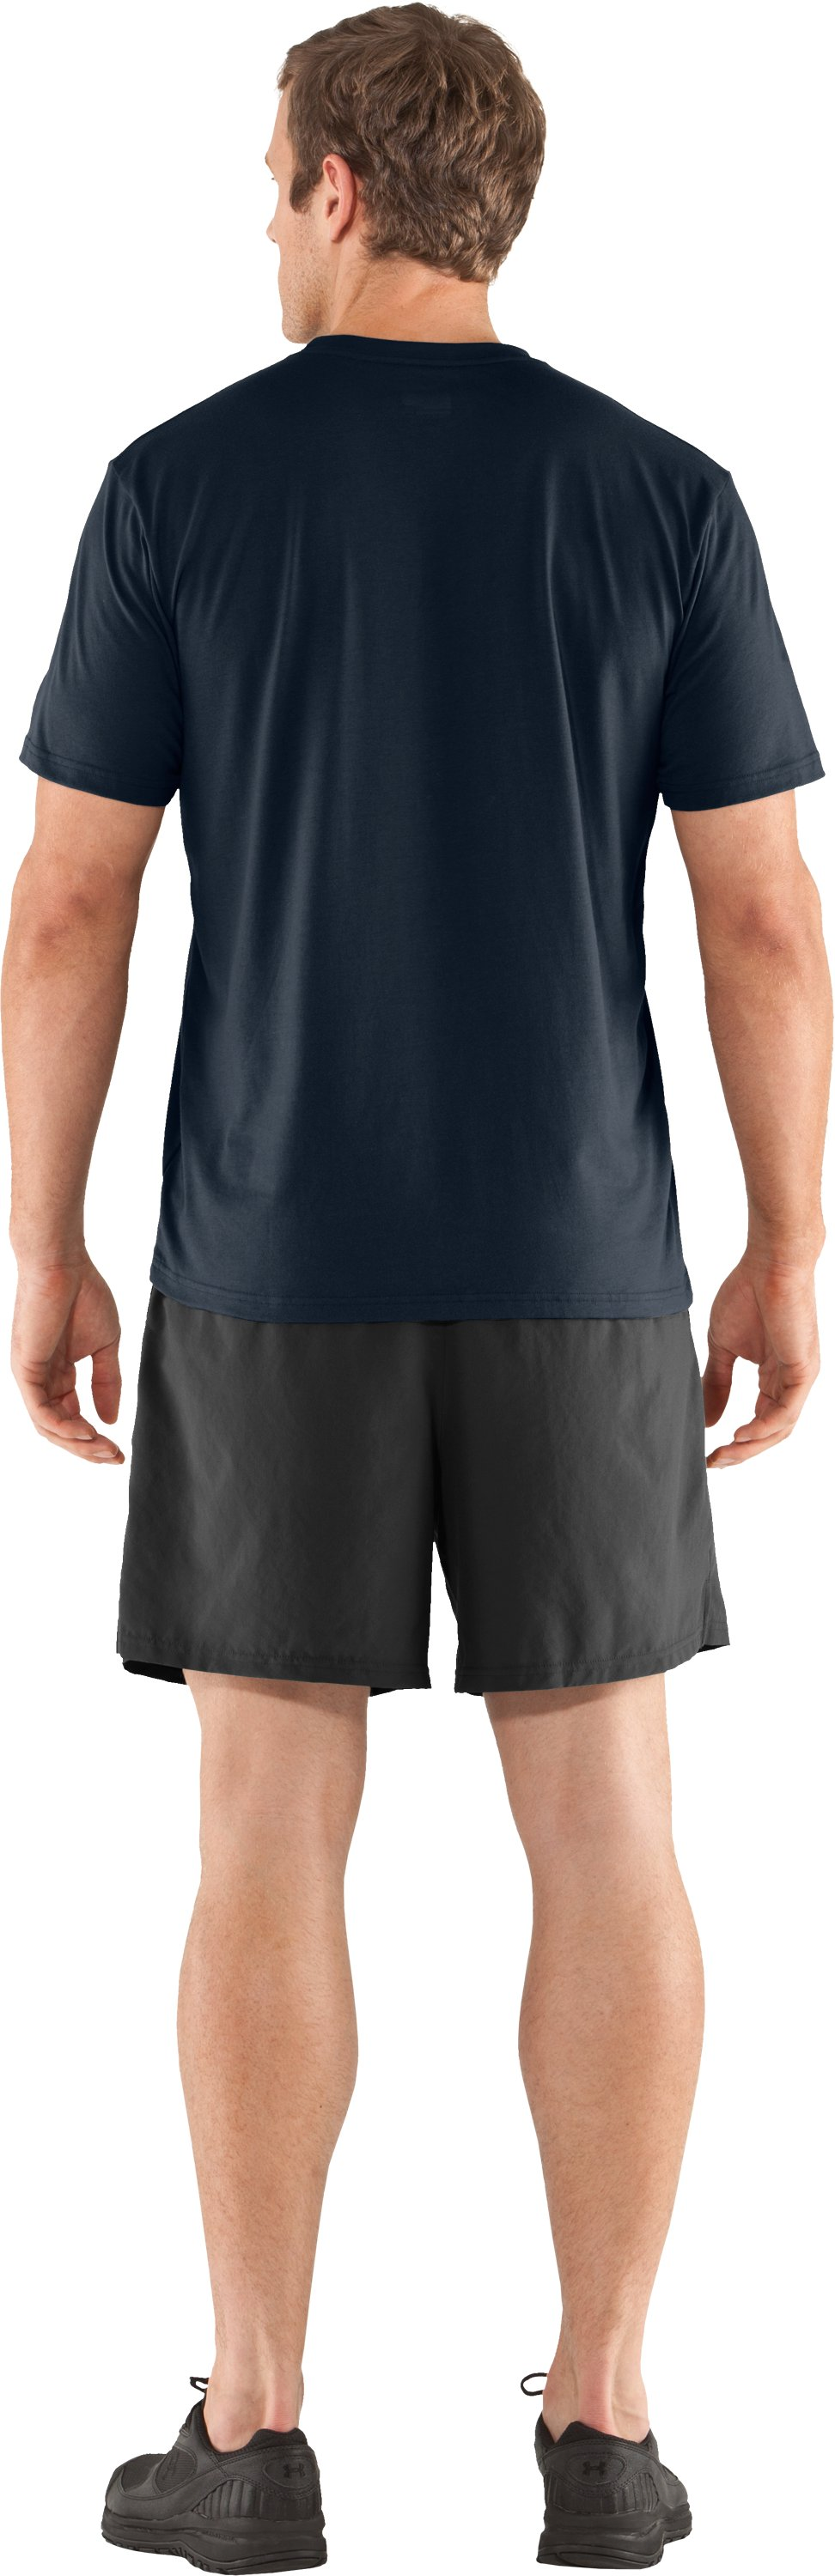 Men's Charged Cotton® Pocket T-Shirt, Cadet, Back